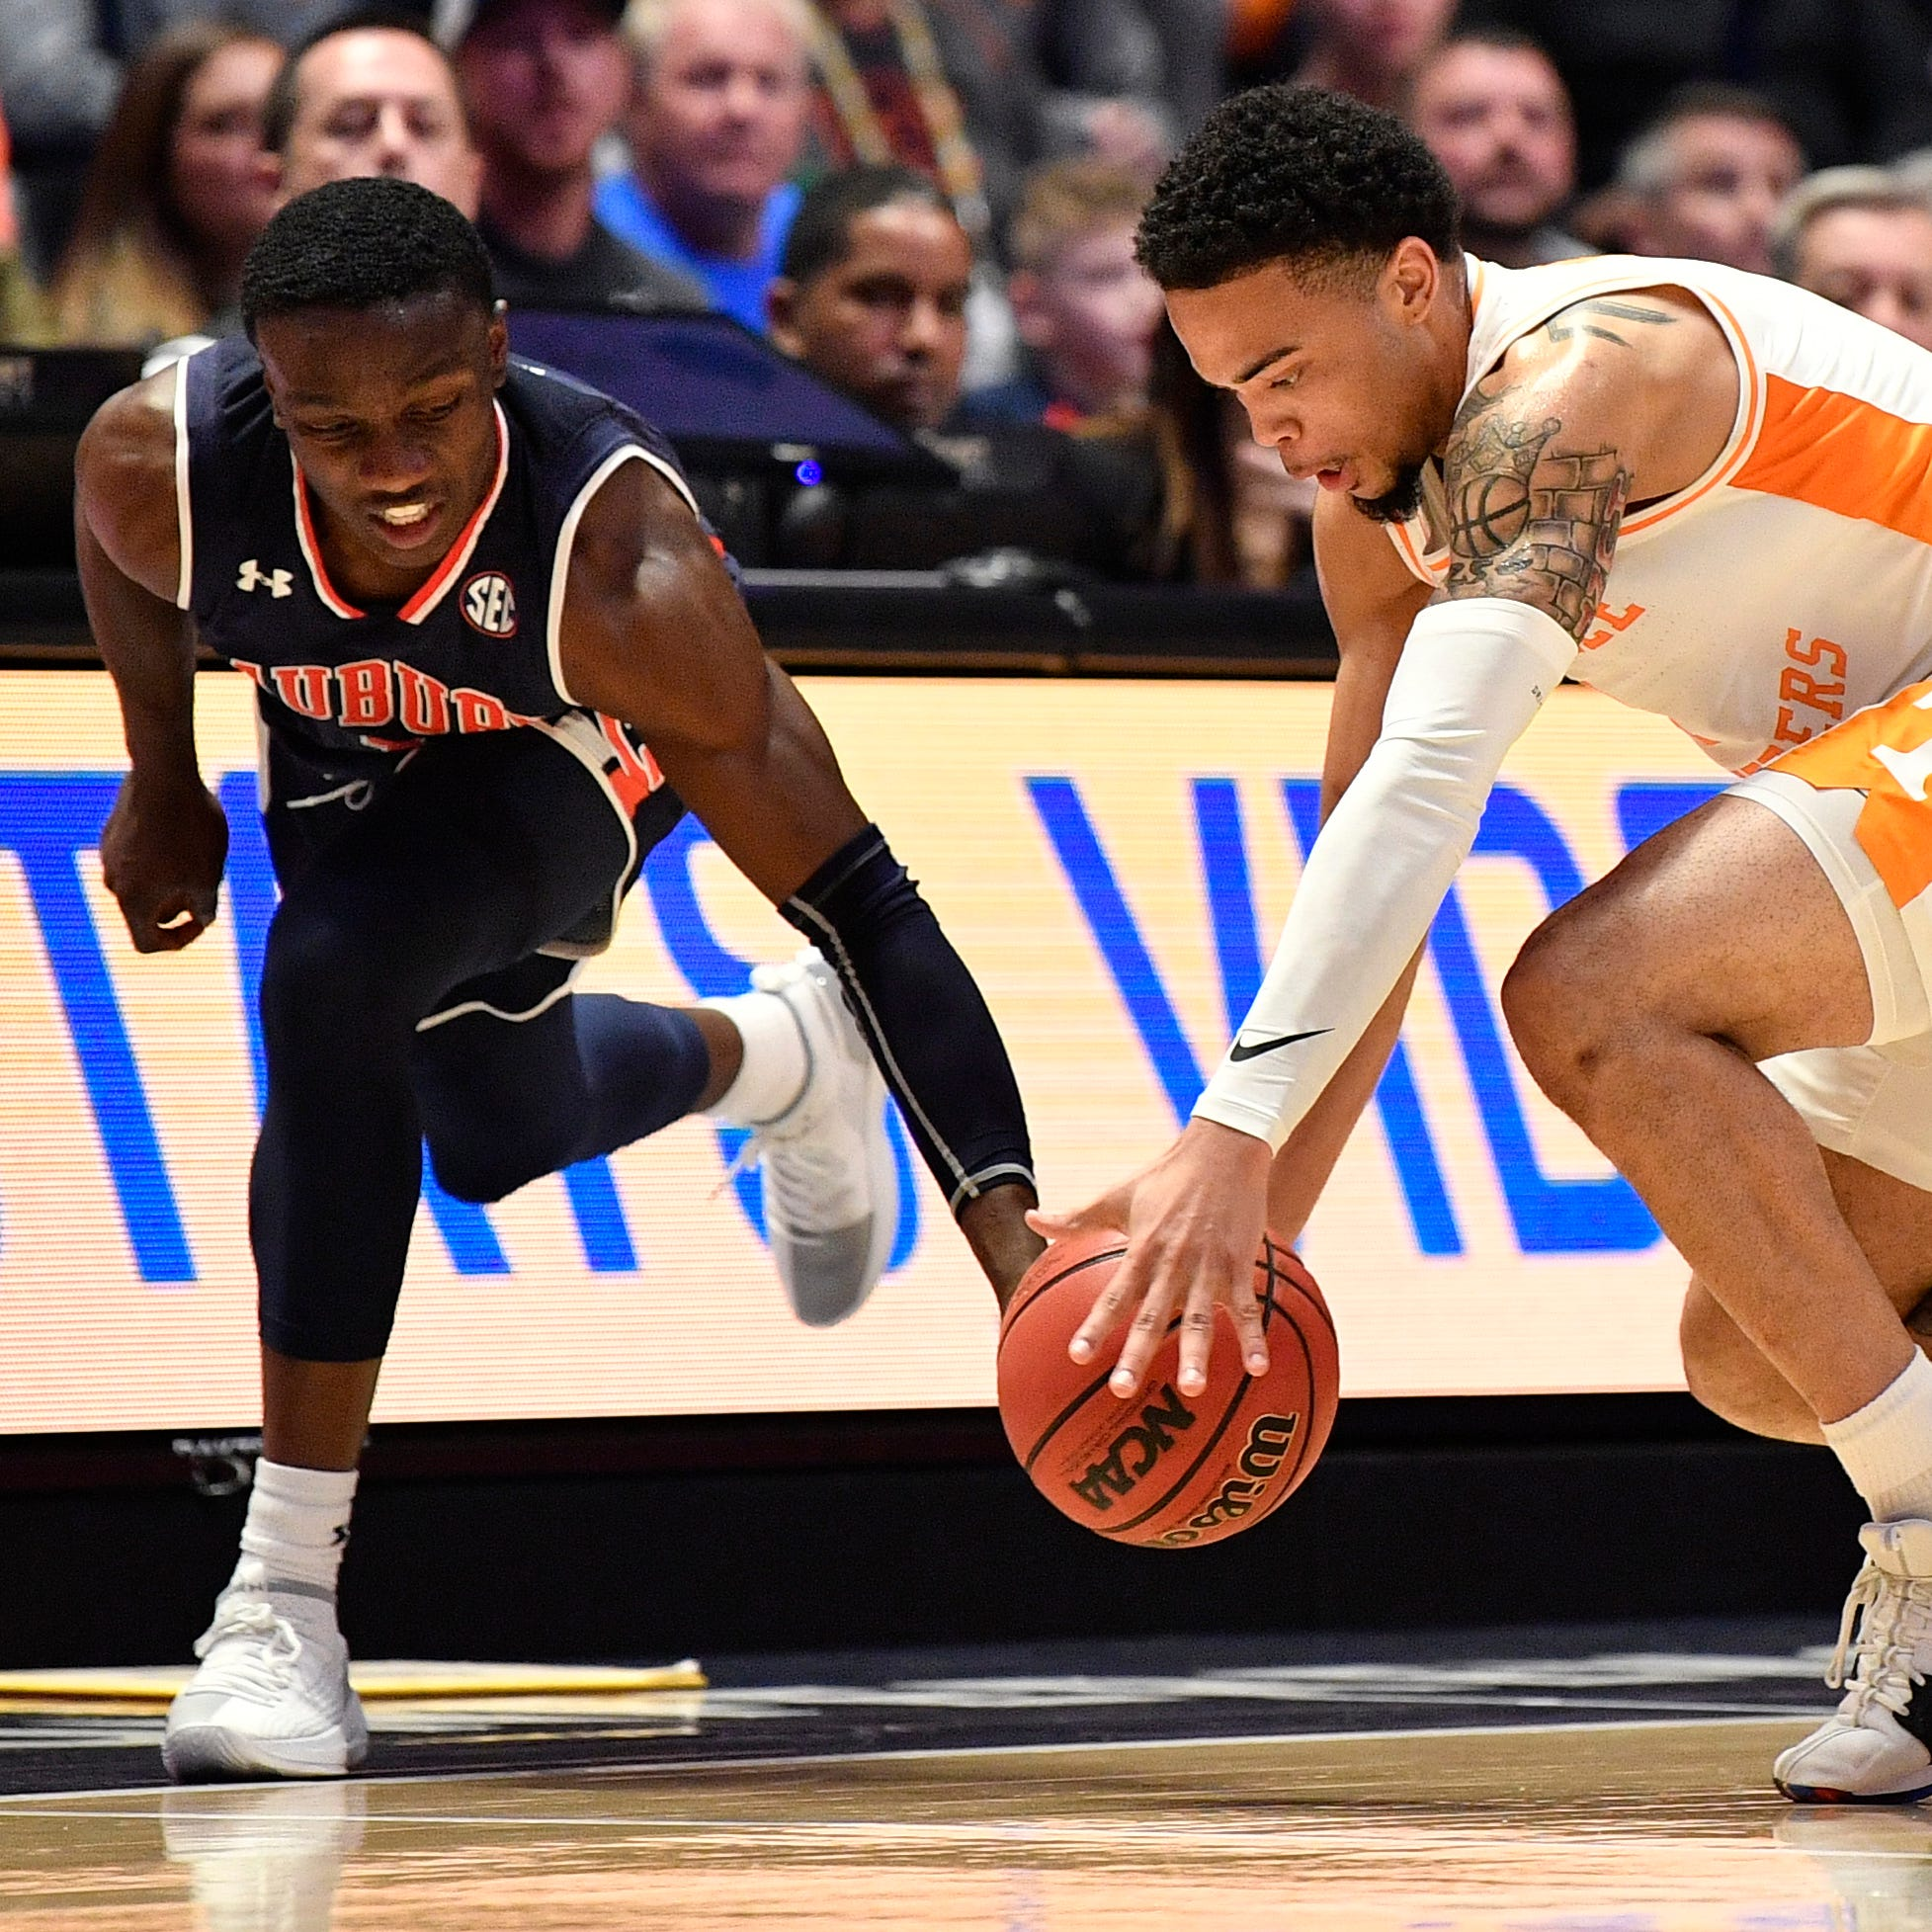 Why Tennessee will make the NCAA Tournament Final Four